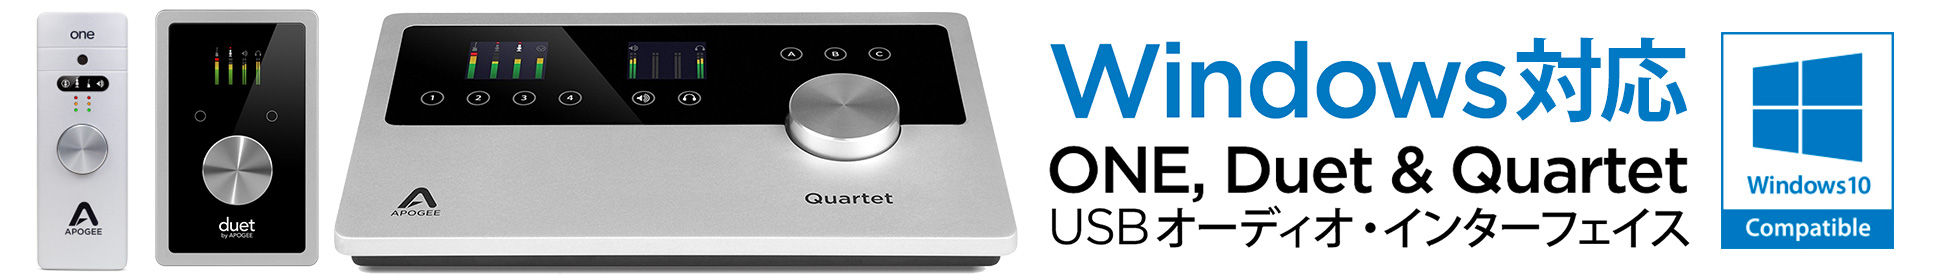 Apogee ONE、Duet、Quartet、Windows 10対応ドライバー公開!